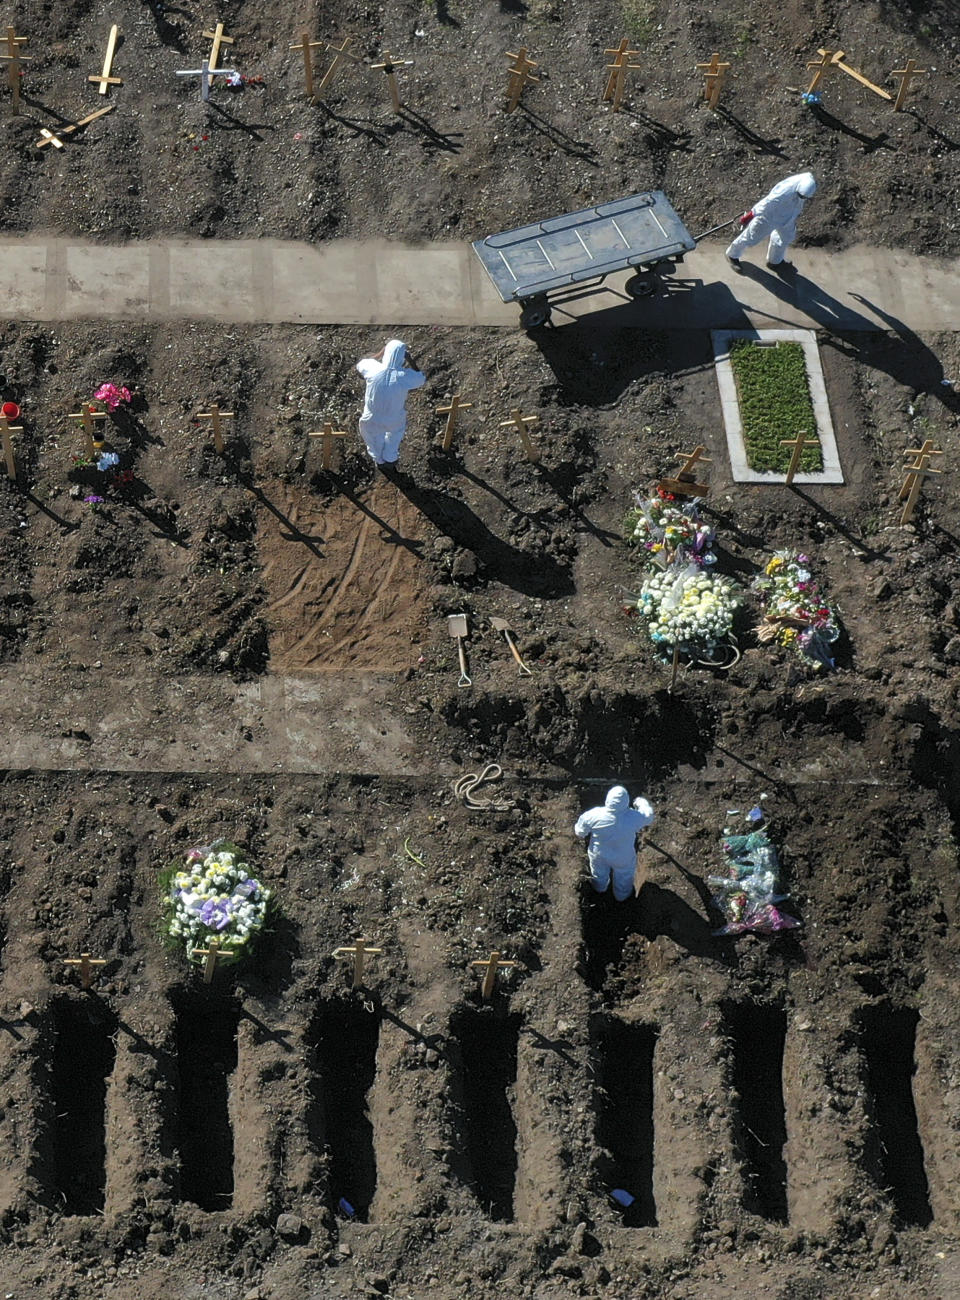 FILE - In this July 25, 2020 file photo, cemetery workers prepare graves at the Flores cemetery where people who died from the coronavirus are being buried in Buenos Aires, Argentina. People are on edge in Argentina, where the number of new coronavirus cases is surging despite nearly five months of strict limits on movement and activities in Buenos Aires and the surrounding area. (AP Photo/Gustavo Garello, File)